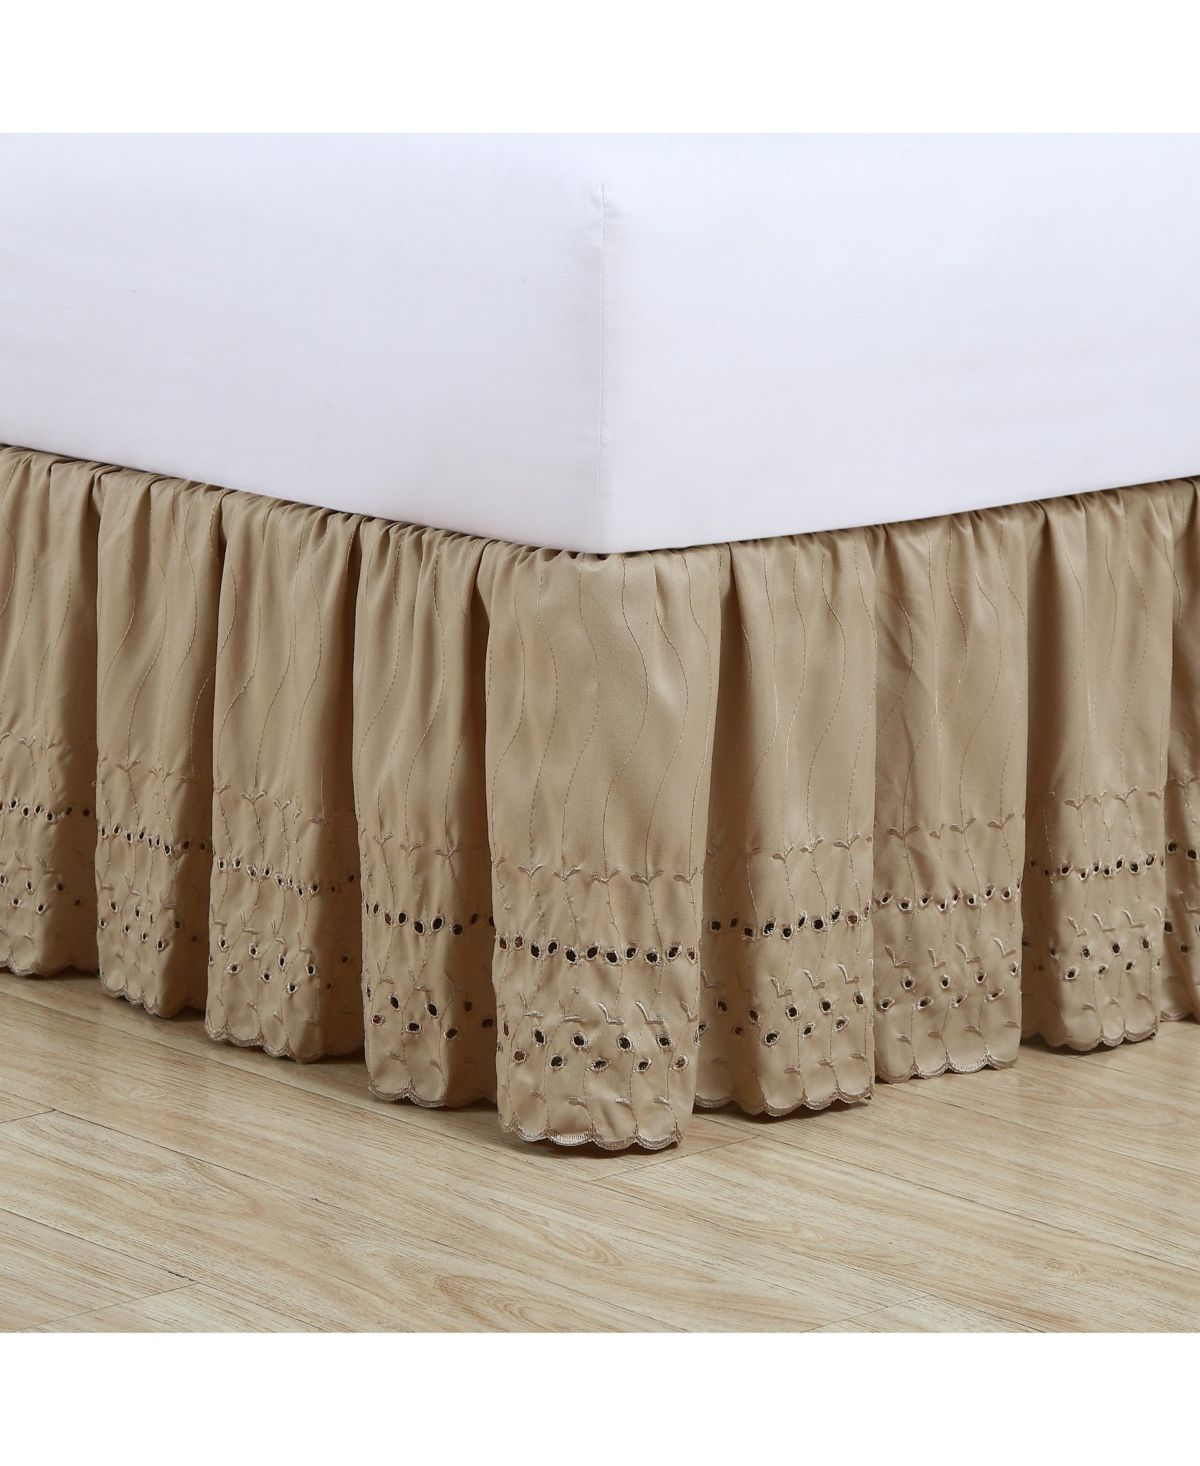 DESIGNER SPLIT CORNER BOTTOM EDGE RUFFLE BED SKIRT 1000 TC EGYPTIAN COTTON KING